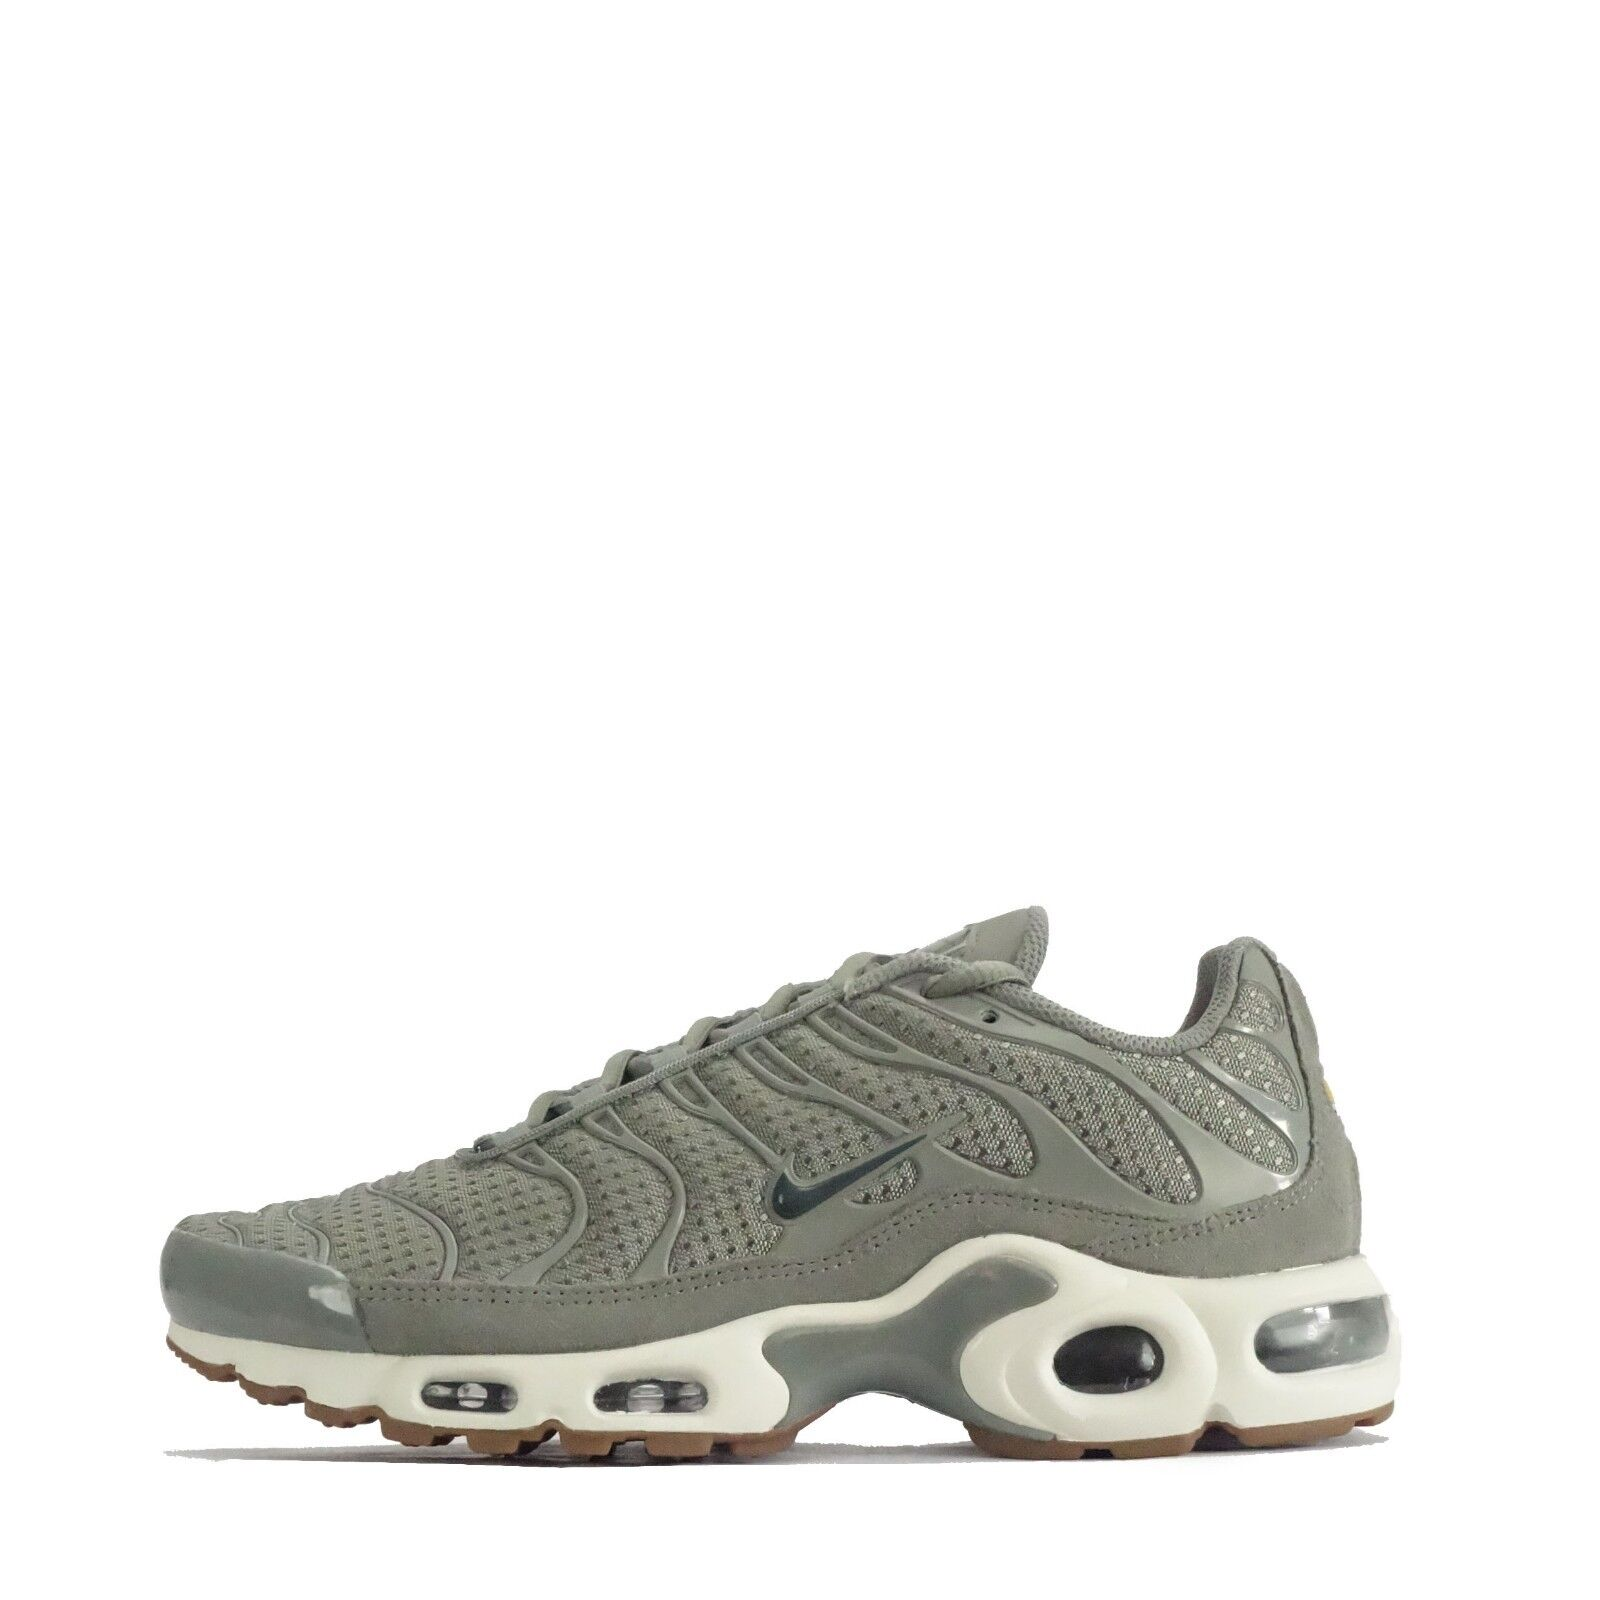 Nike Air Max Plus Tuned Wo Hommes Trainers Dark Stucco / Vintage Green